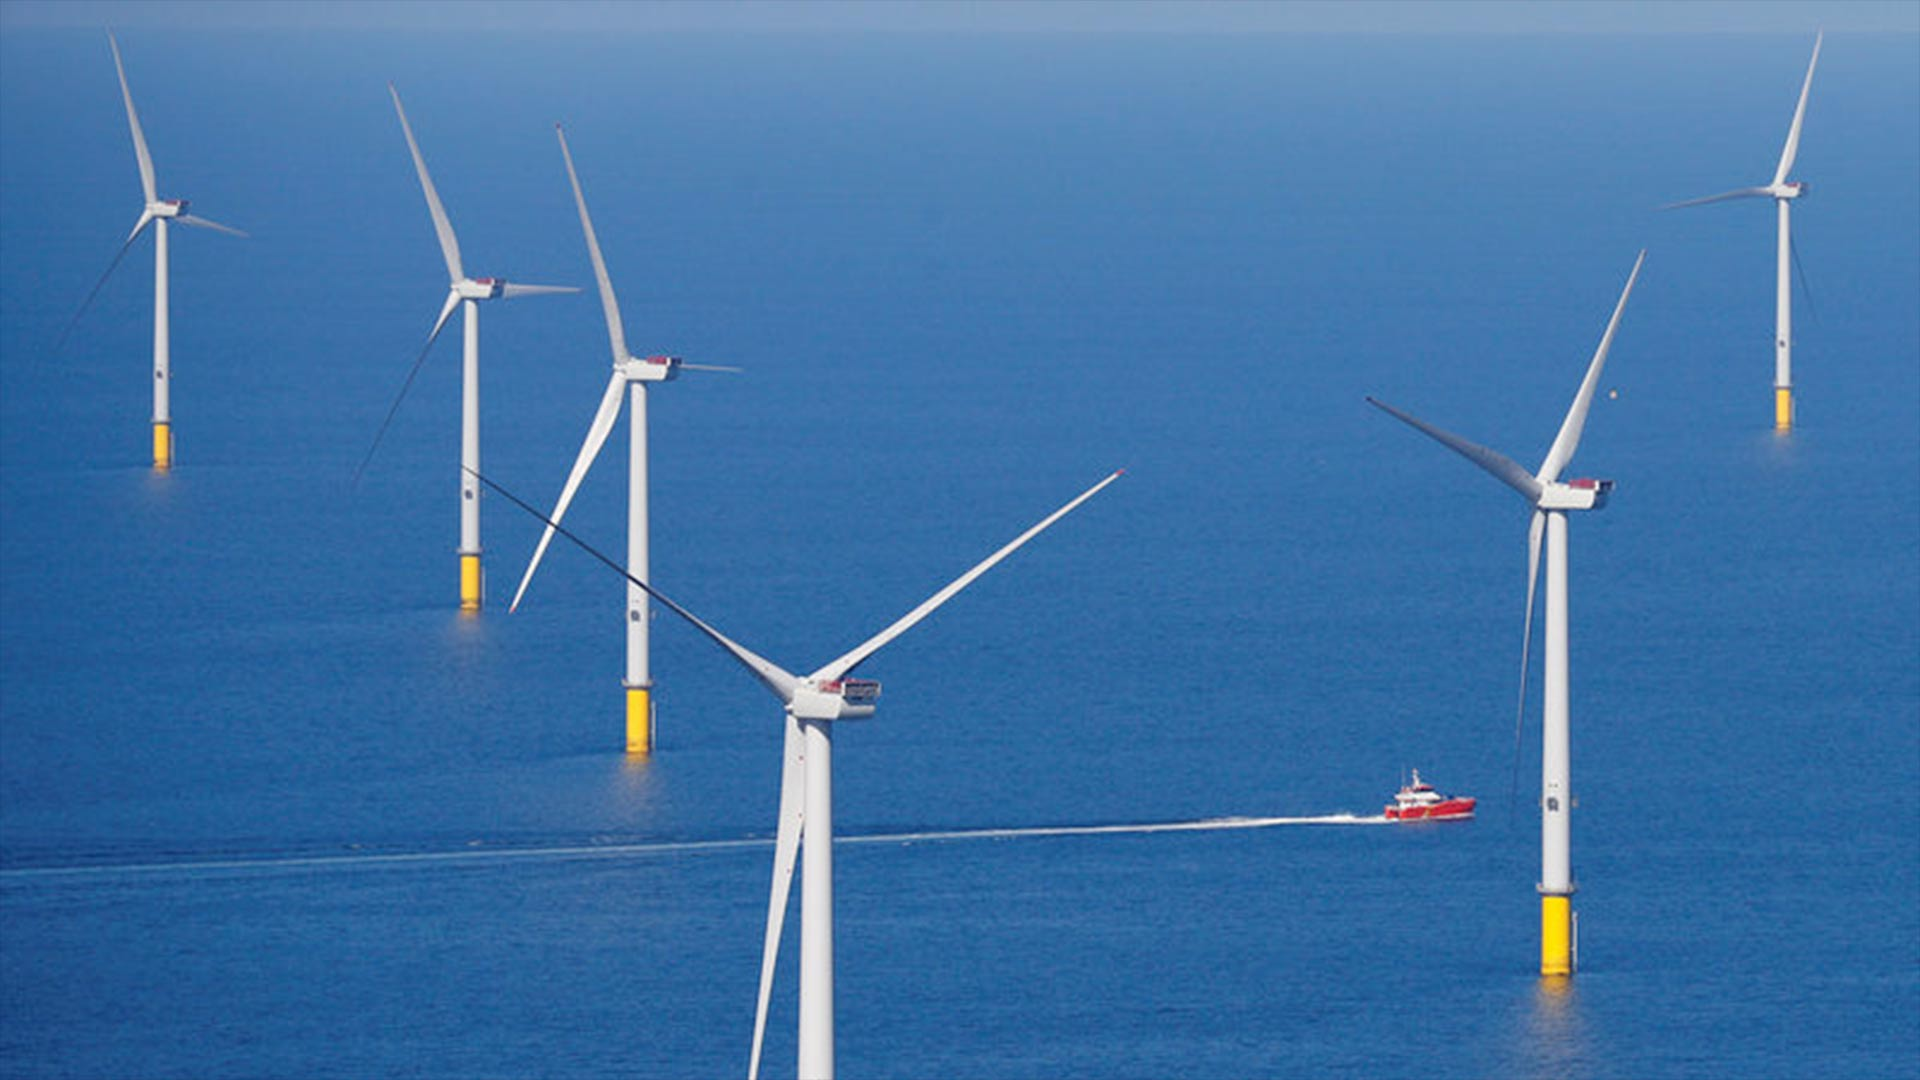 ocean_wind_farm_npr_news_hero